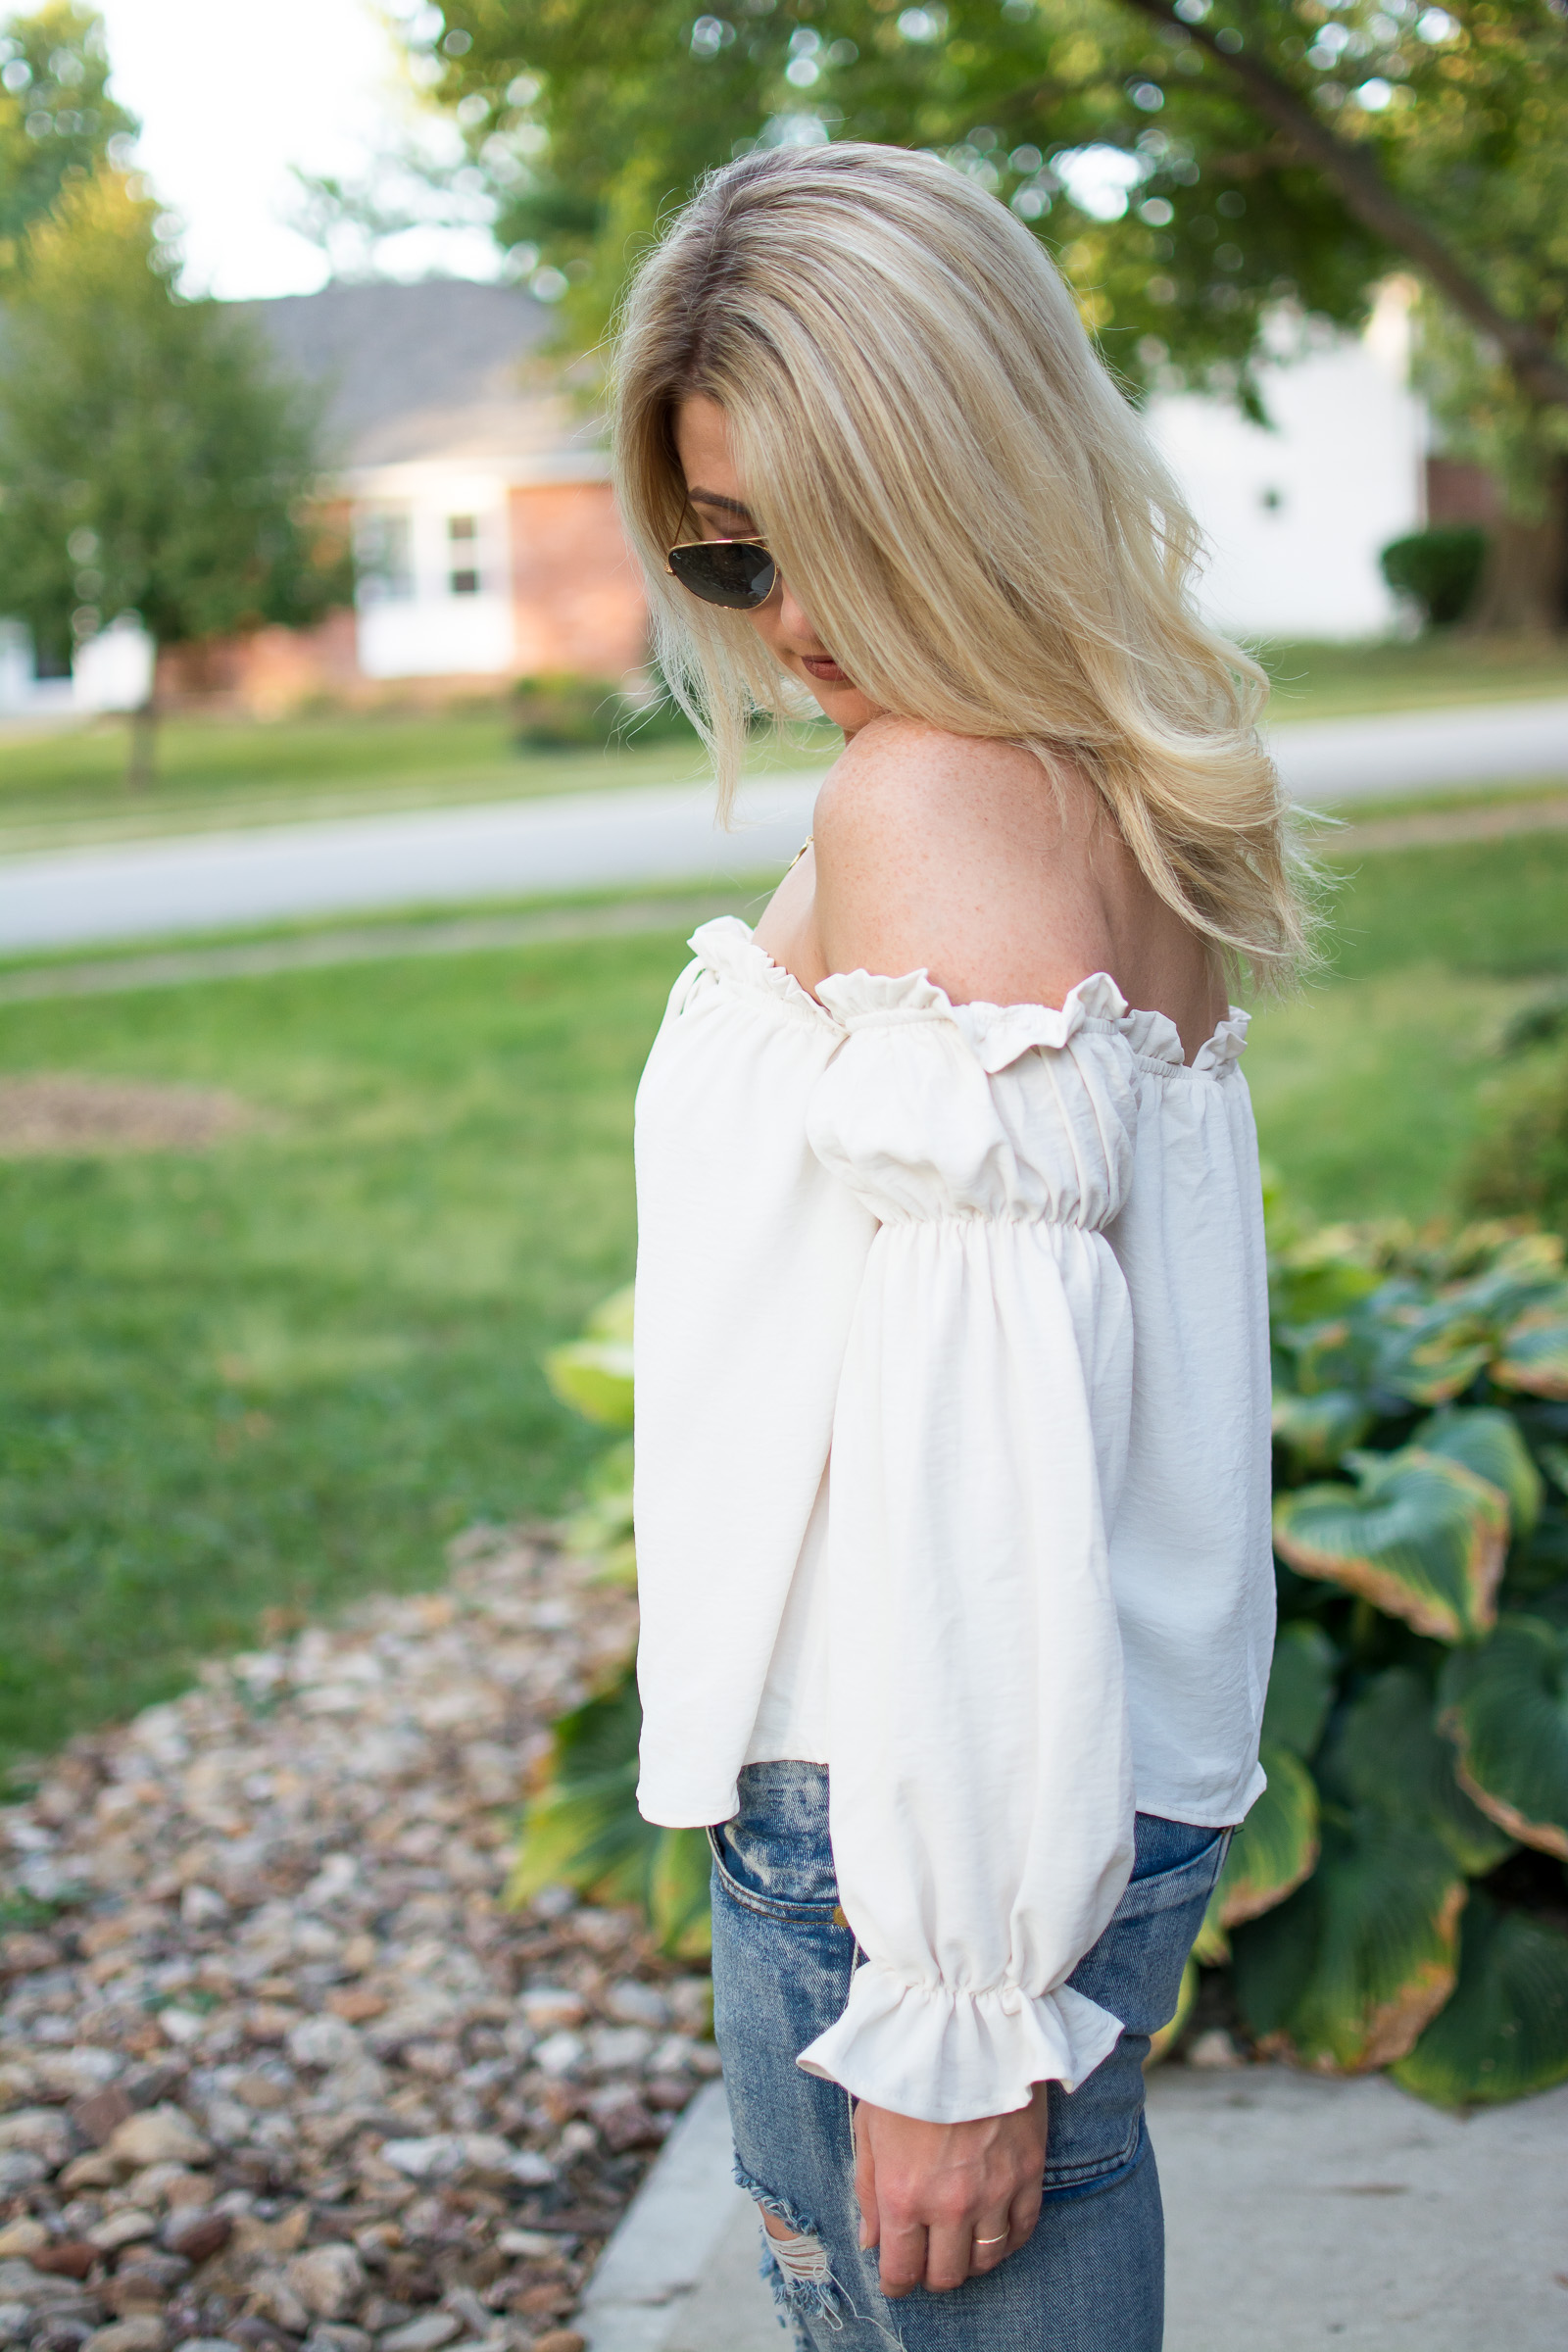 Girly and Tough: Flouncy Blouse with One Teaspoon Boyfriend Jeans. | Ashley from LSR